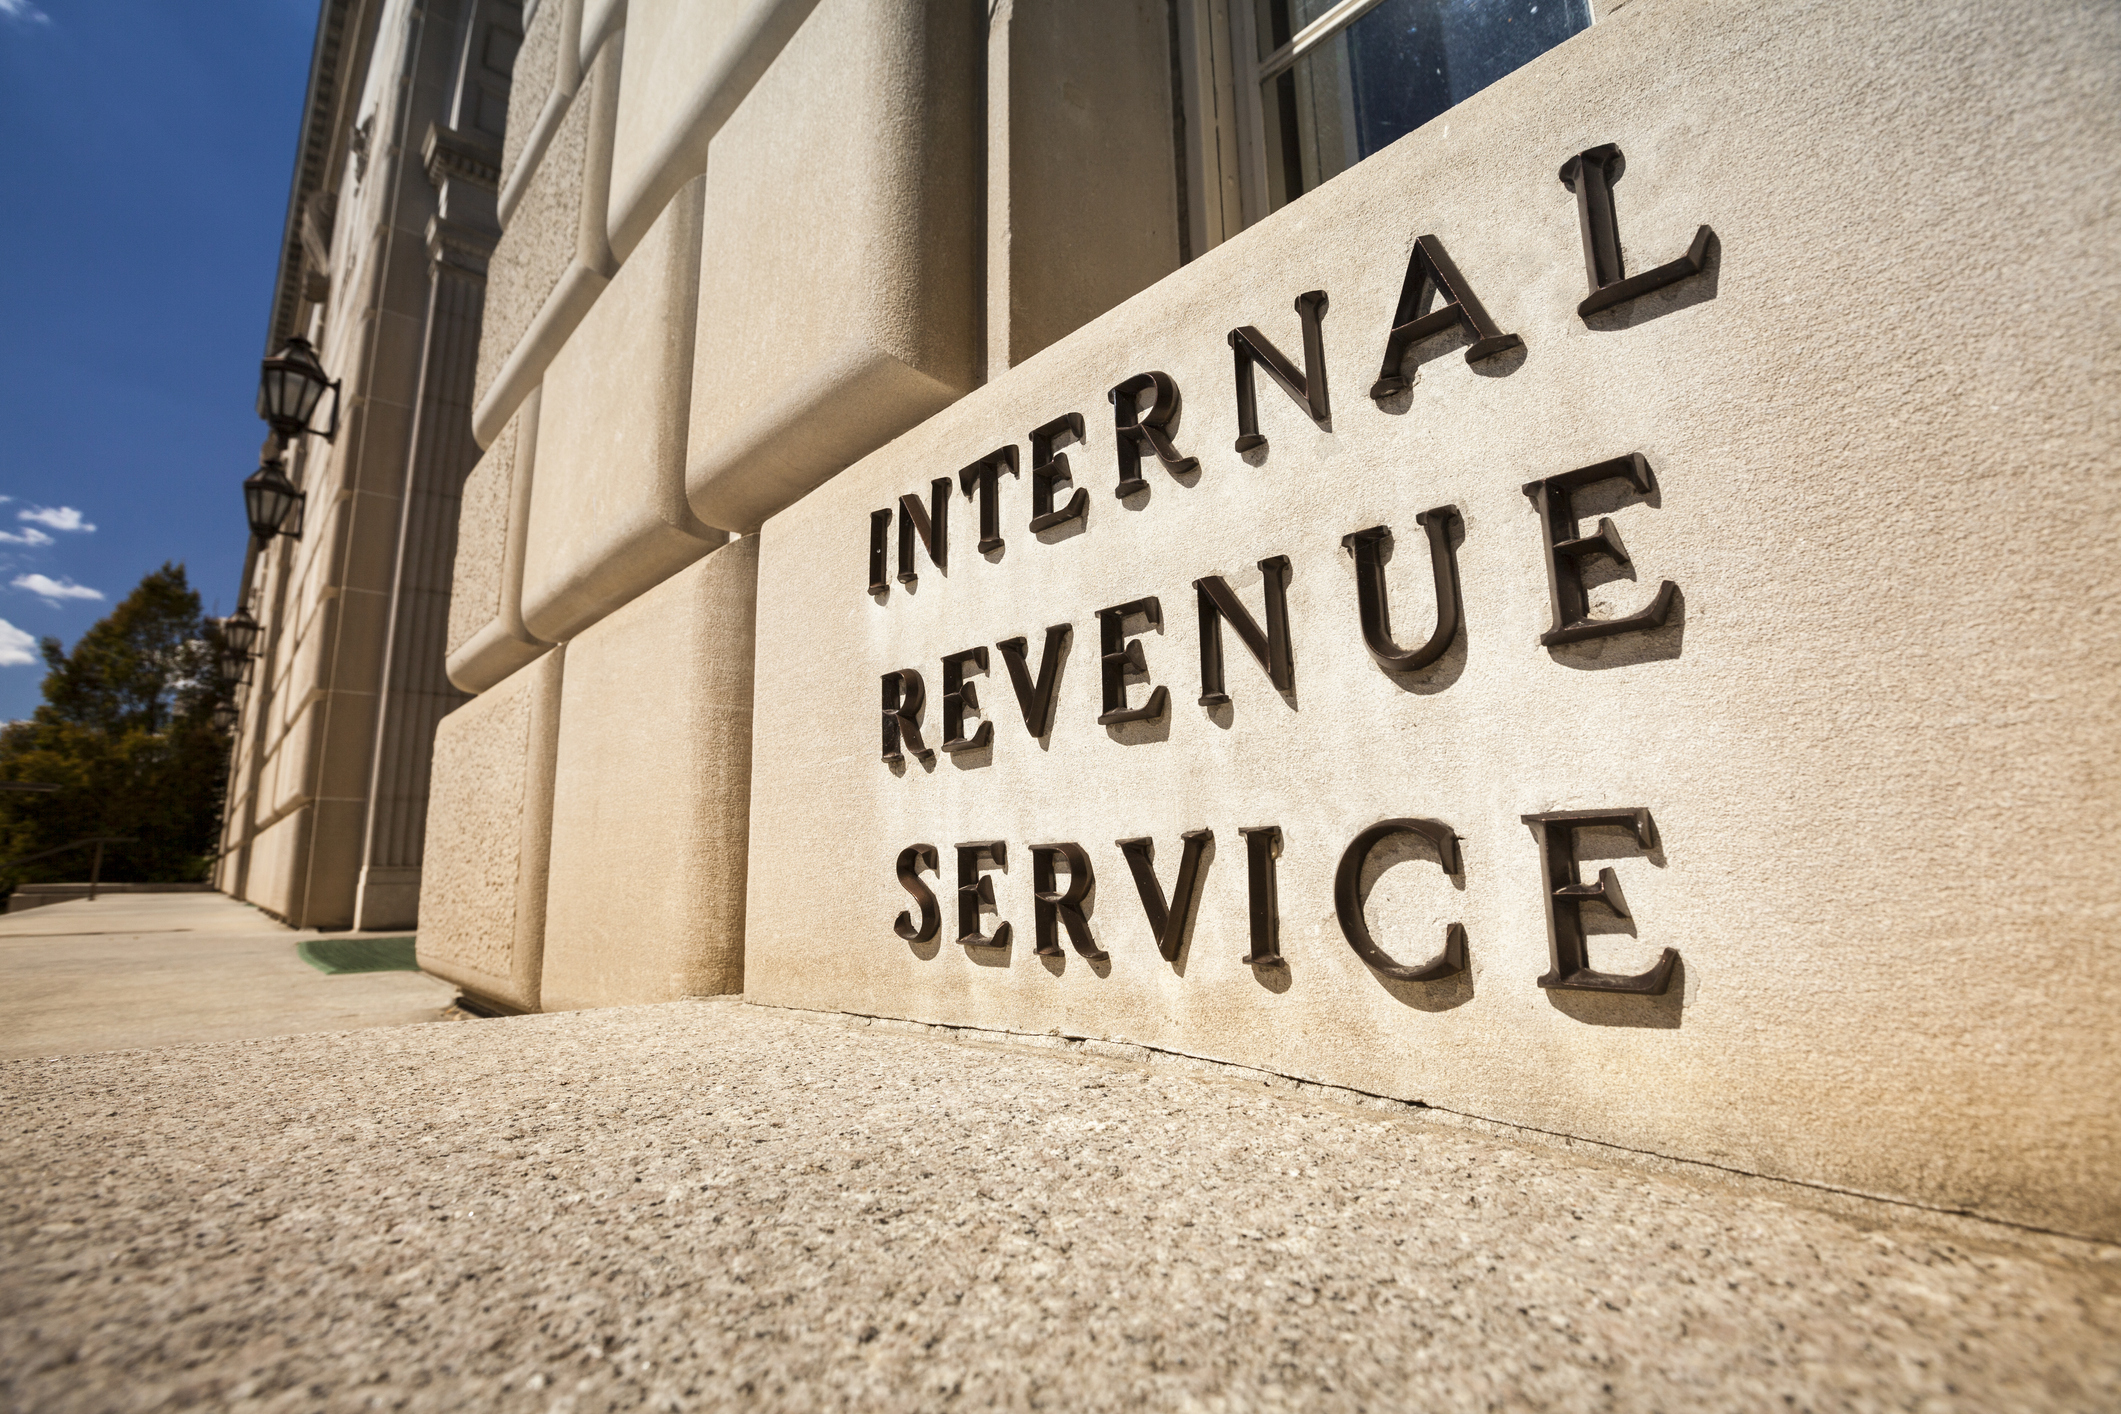 Updated: IRS releases draft instructions and deadlines for 2019 Form 1095-C: Here's what you need to know